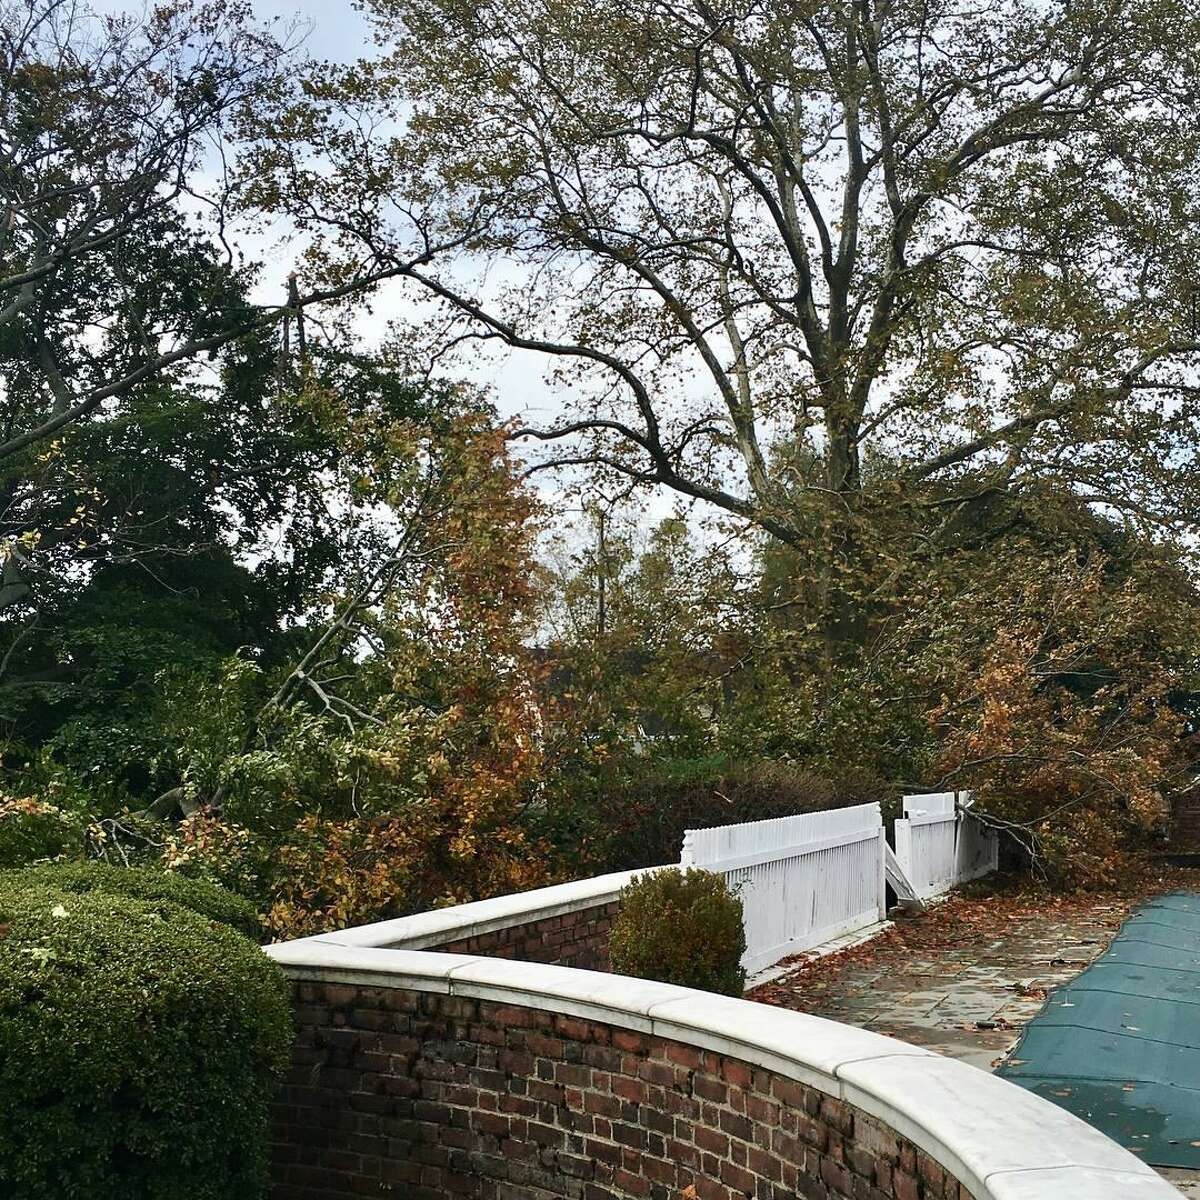 Strong winds blew down a landmark copper beach tree in Bridgeport's Black Rock section on Sunday, Oct. 30. 2017. The tree is located on Hilltop Road, part of